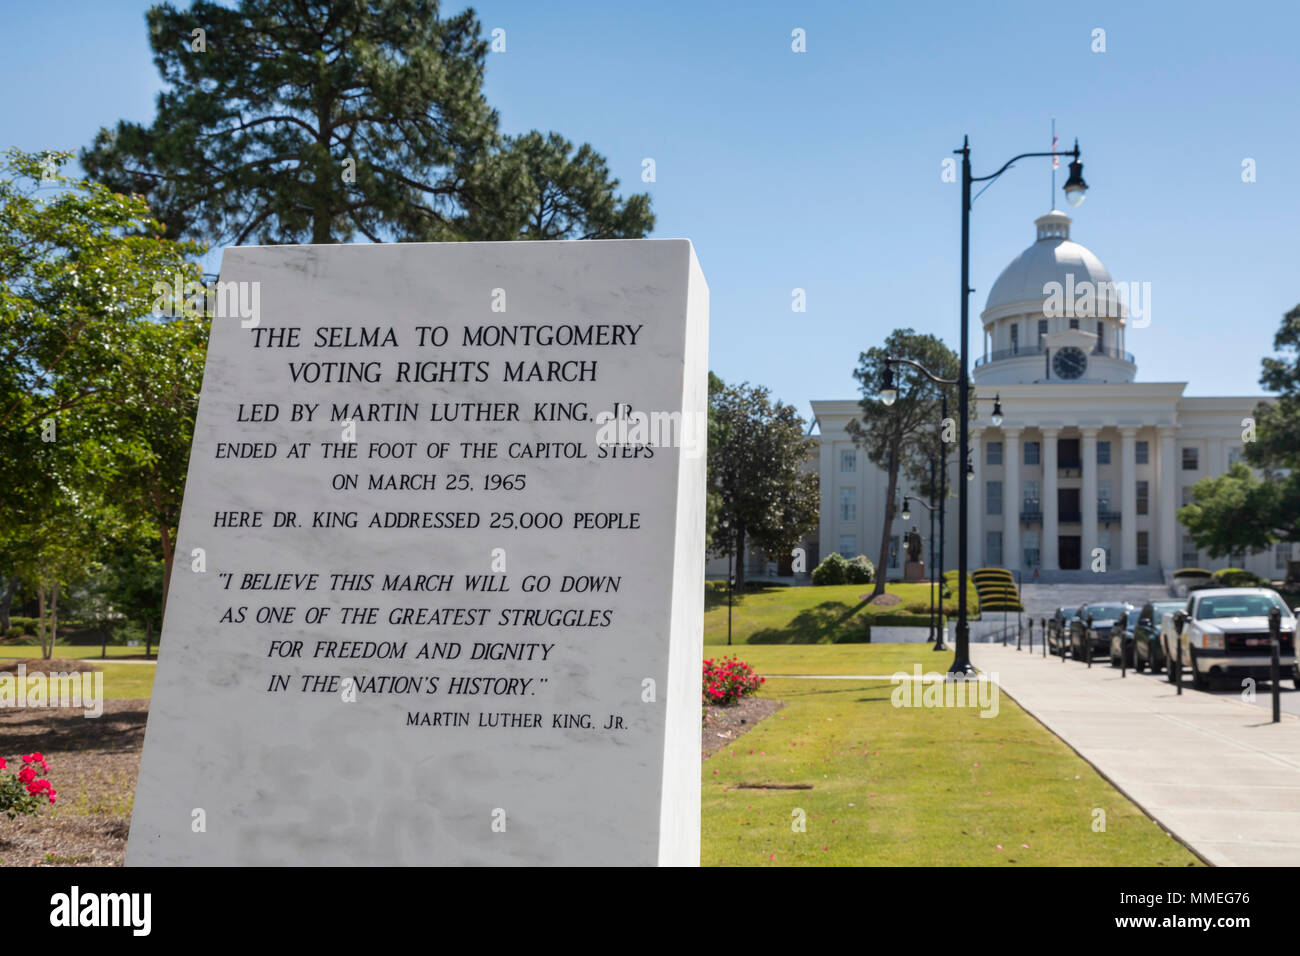 Montgomery, Alabama - A marker at the Alabama state capitol about the 1965 Selma to Montgomery Voting Rights March. - Stock Image